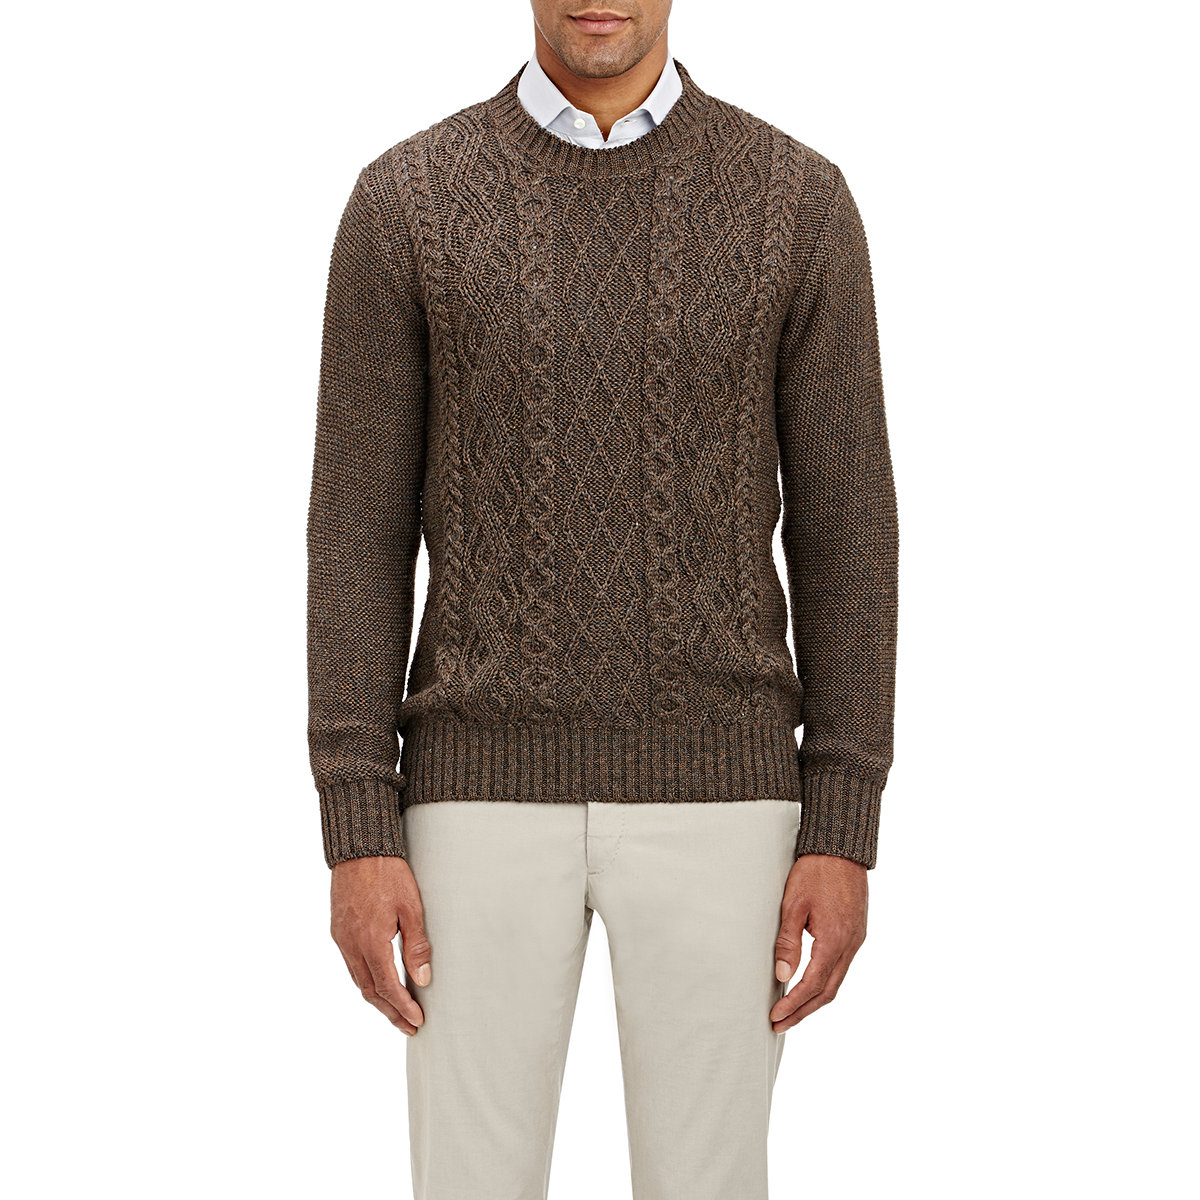 Lyst Inis Mein Cable Knit Sweater In Brown For Men